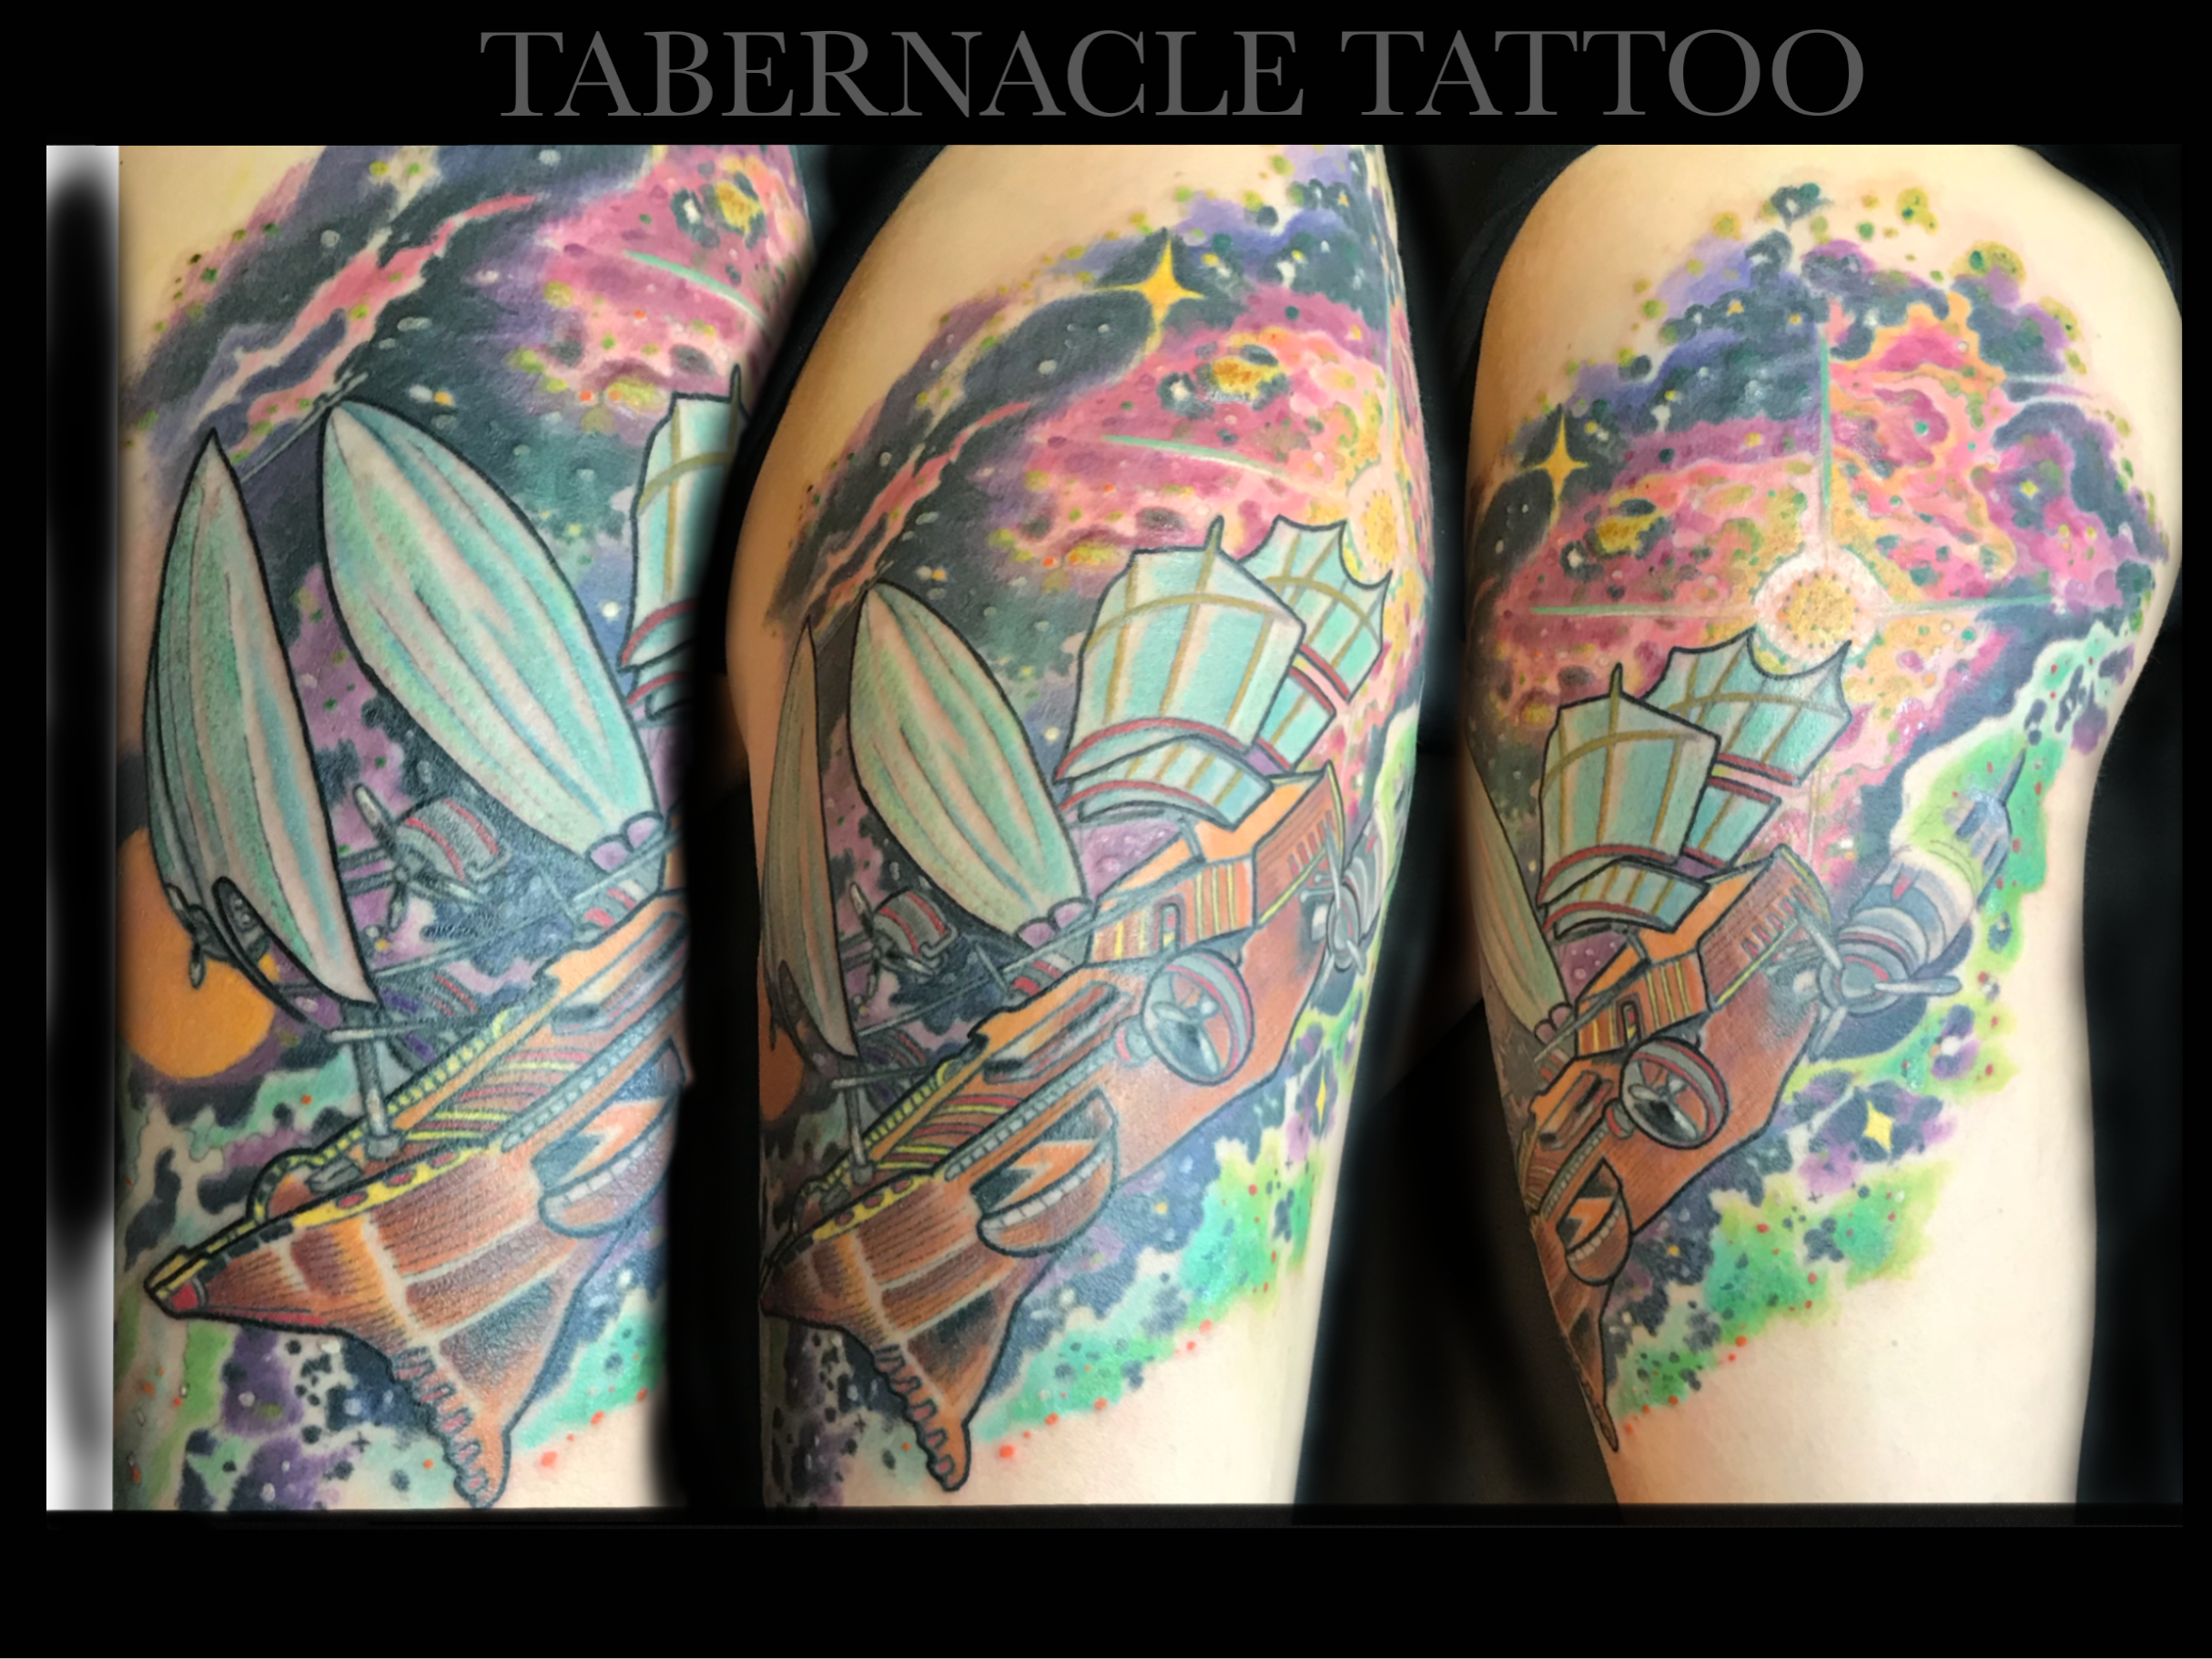 Space Ship Tattoo| Space Shuttle| Astronaut Tattoo